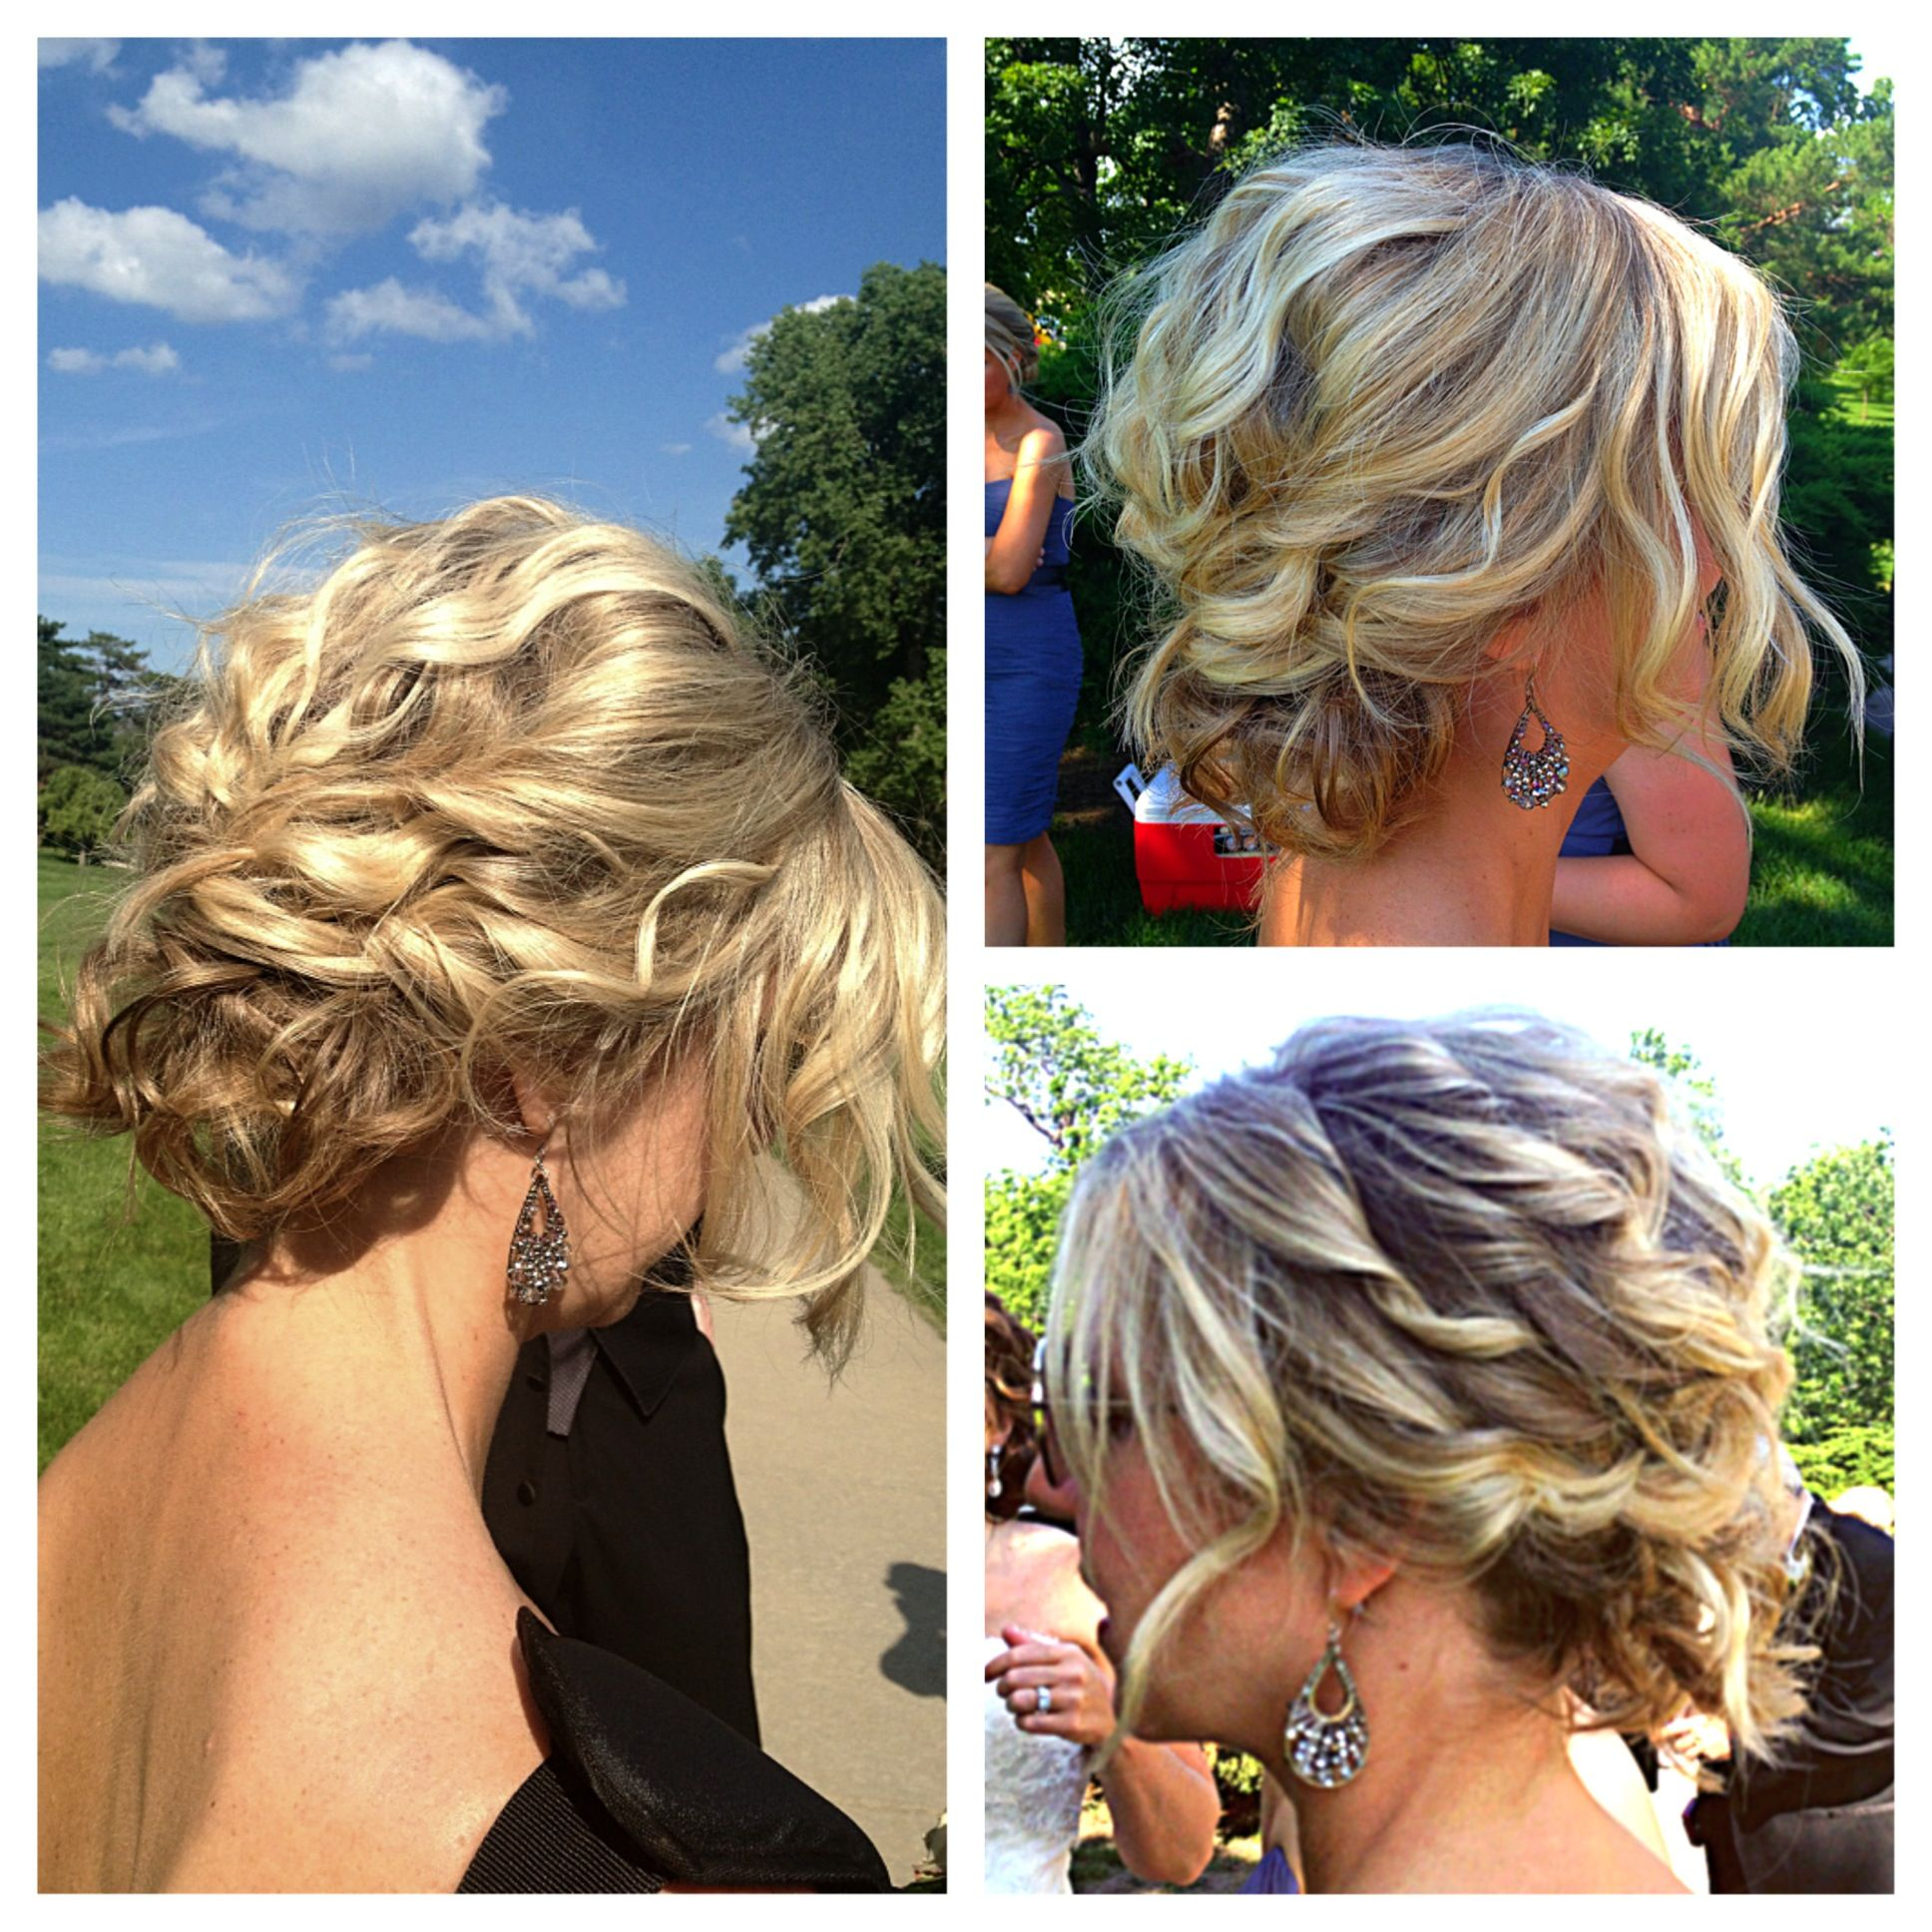 Short Hairstyles For Wedding Bridesmaid: Collaborative Work By Kristy Shelton And Julie Meacham